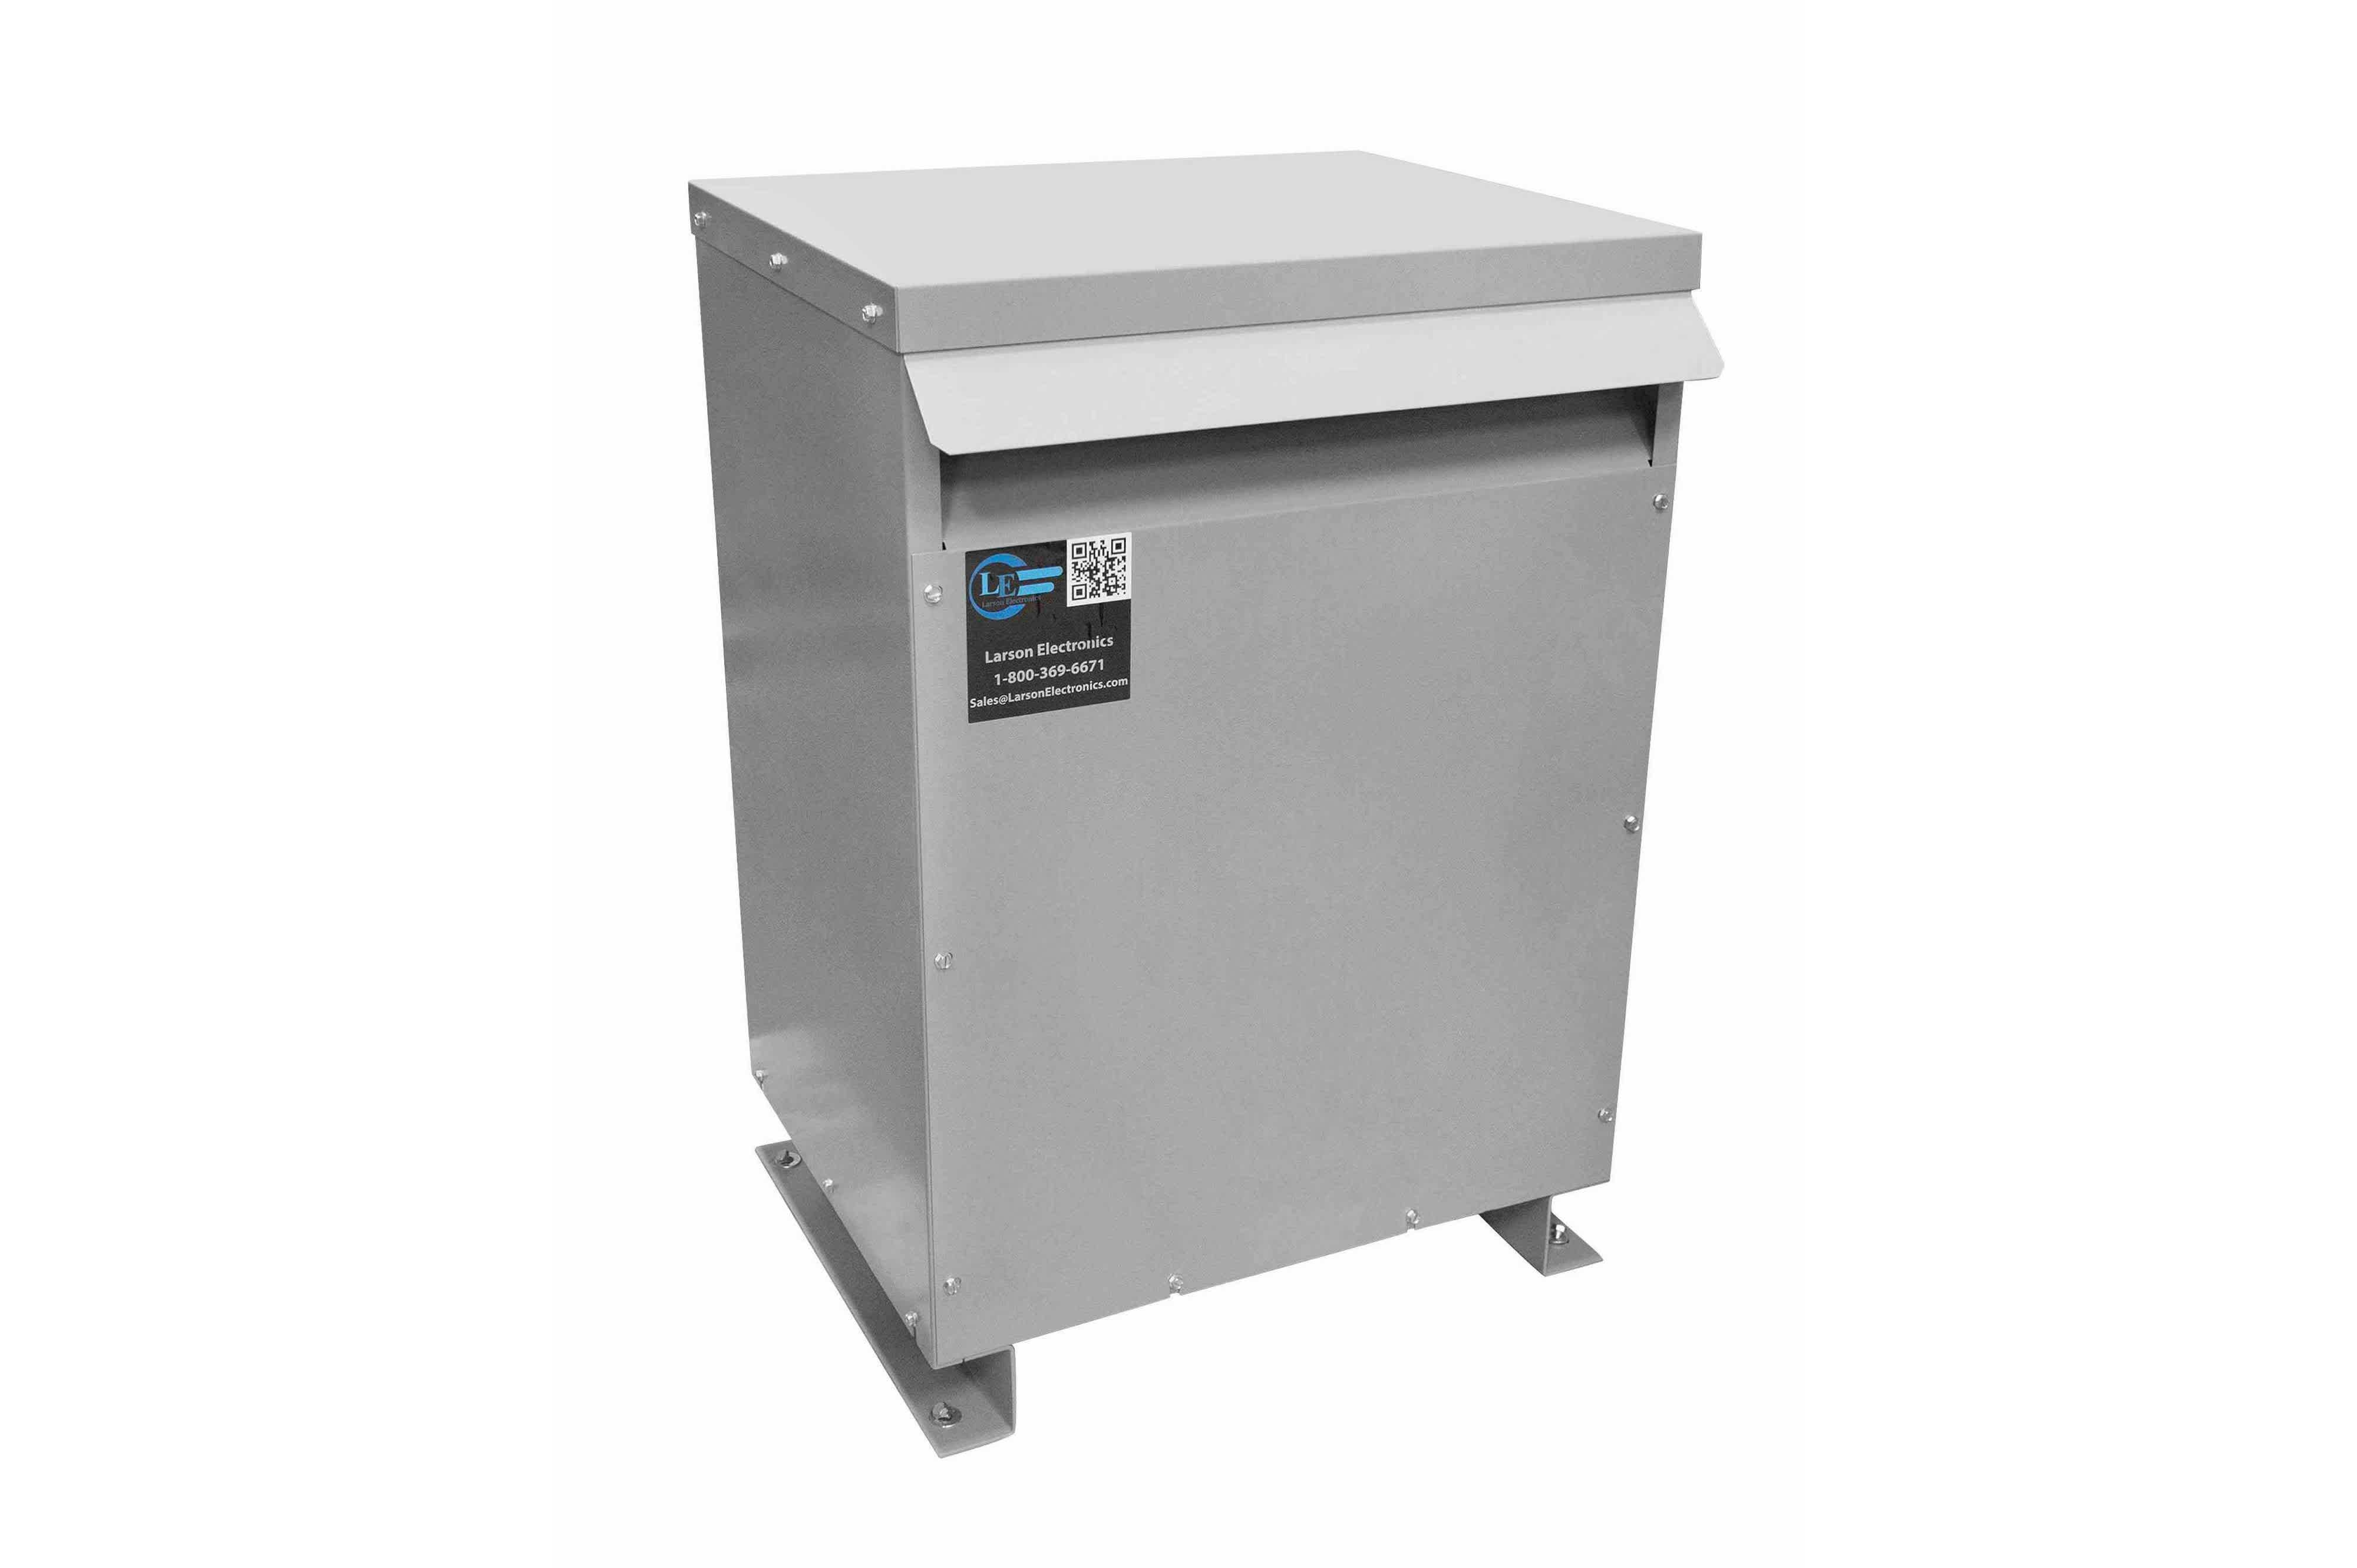 45 kVA 3PH Isolation Transformer, 208V Delta Primary, 240 Delta Secondary, N3R, Ventilated, 60 Hz